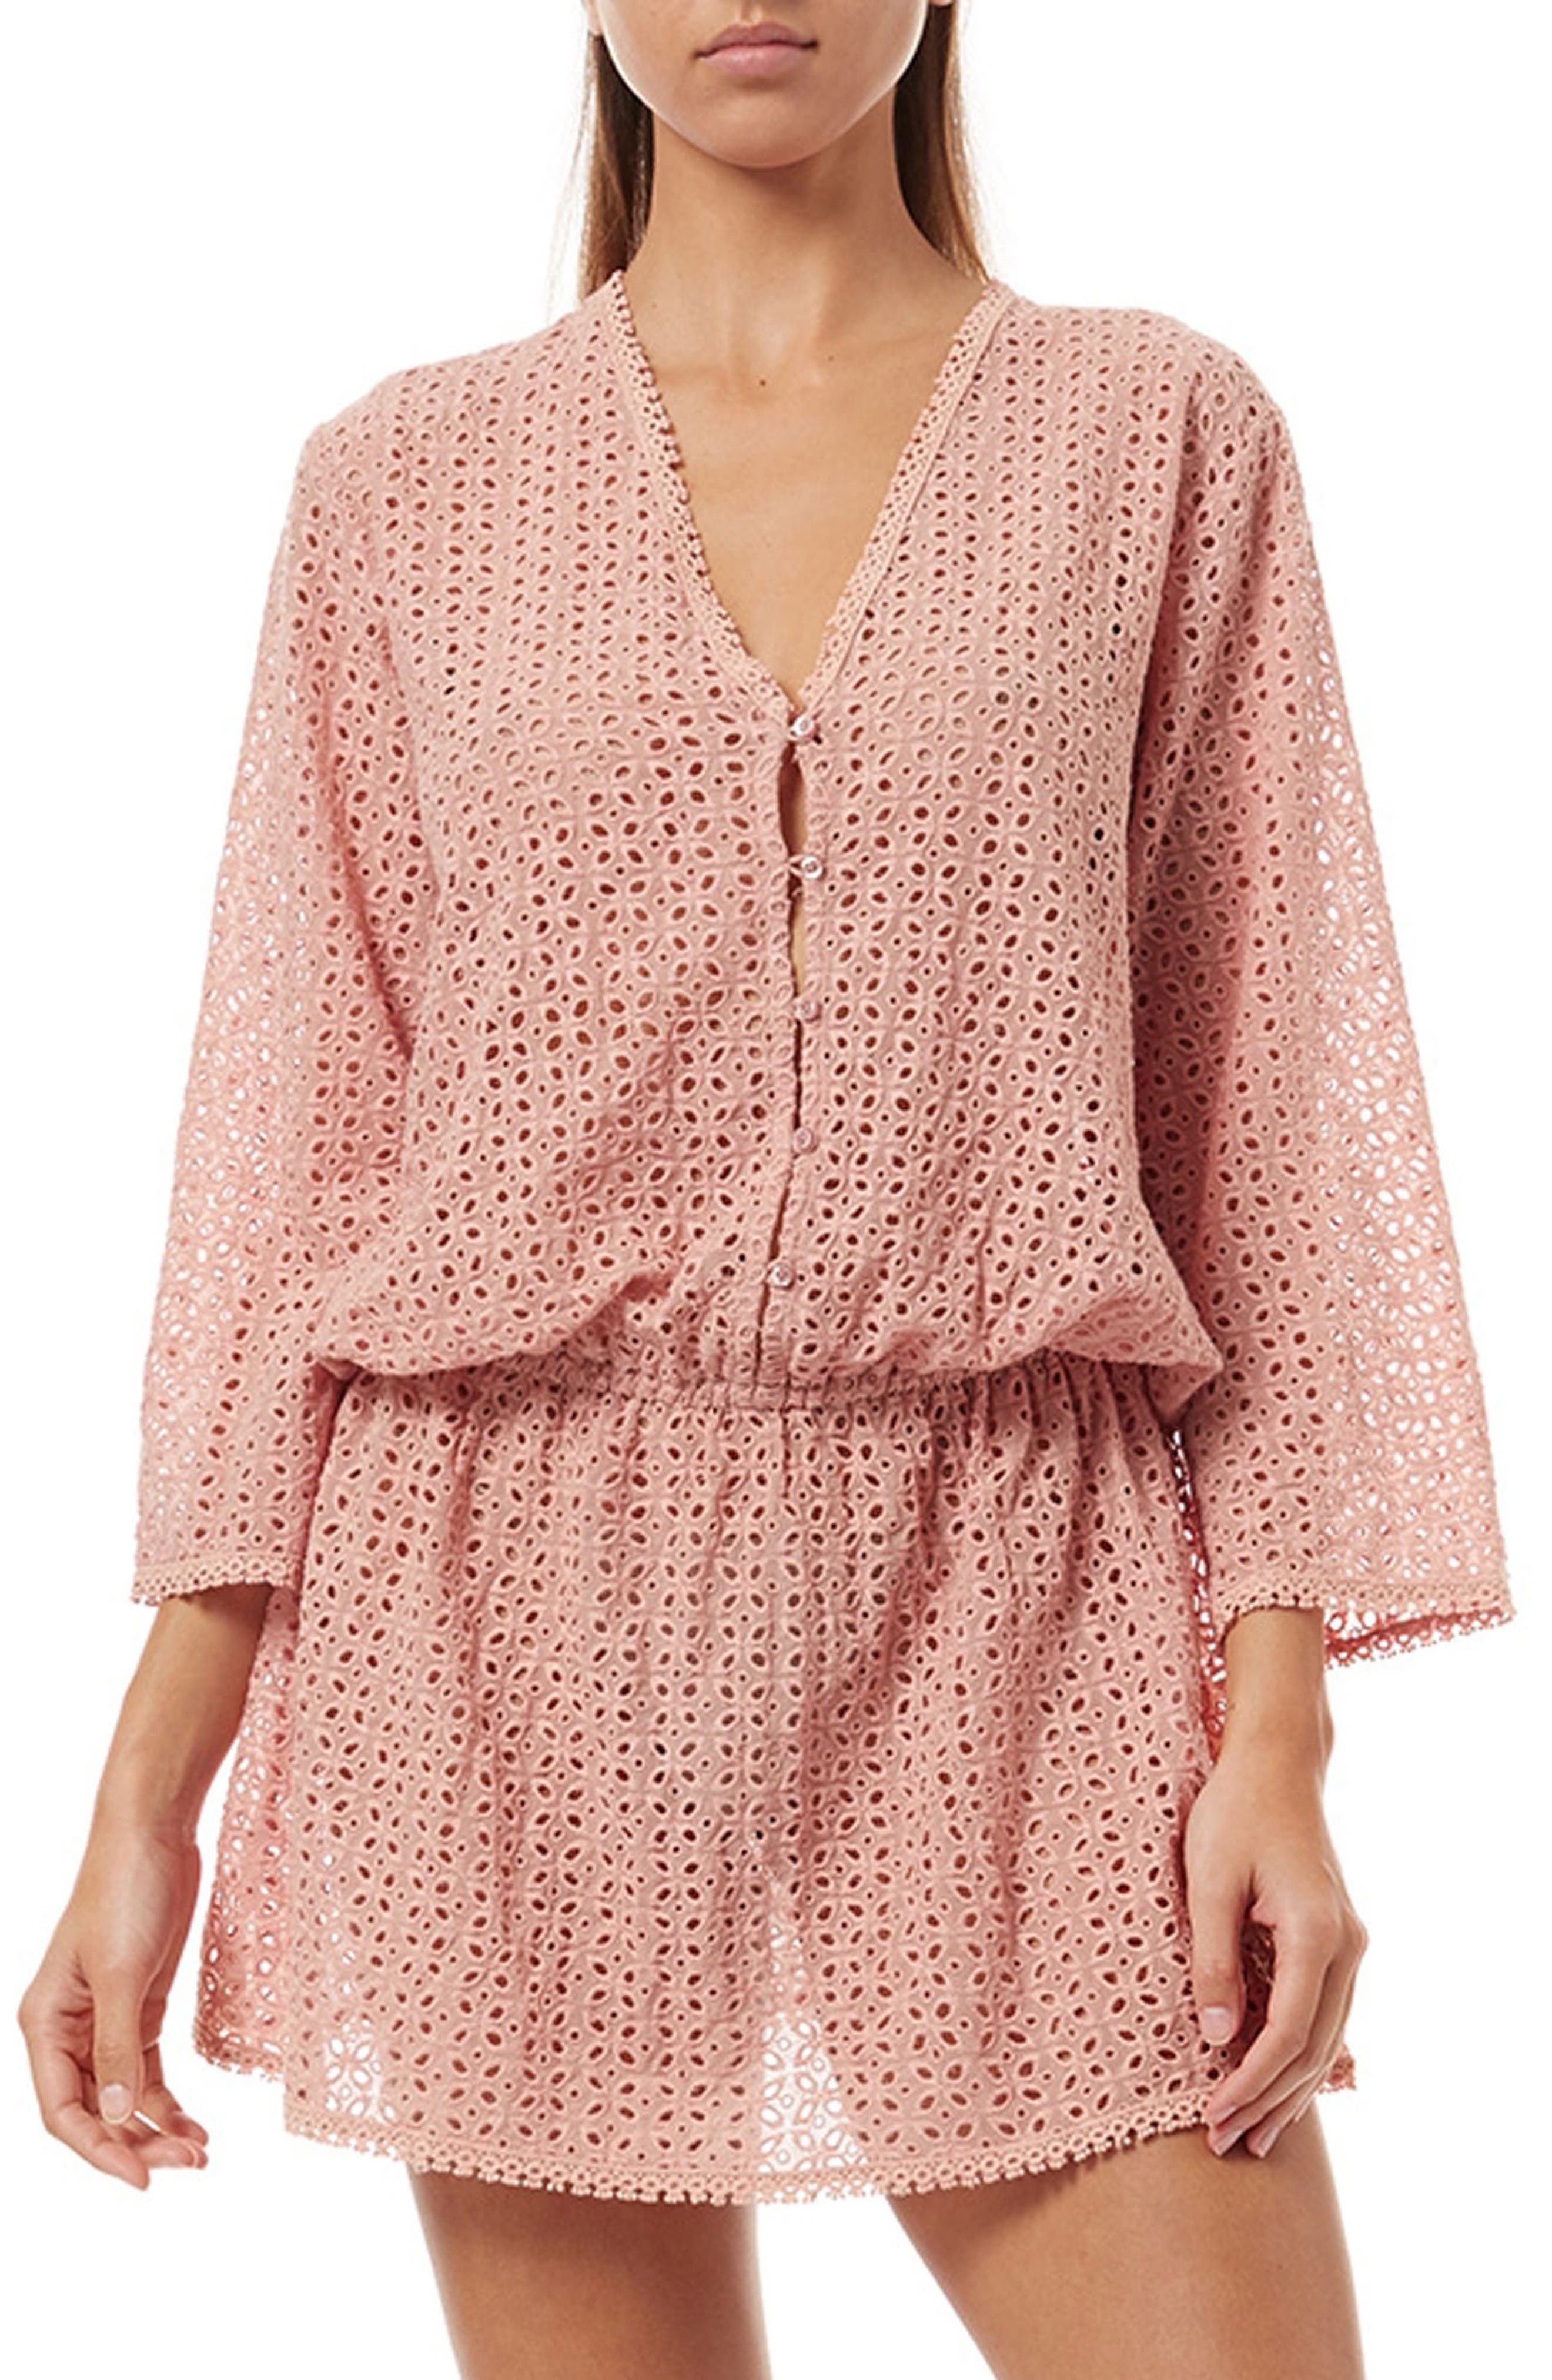 Kylie Cover-Up Dress,                         Main,                         color, DUSTY ROSE